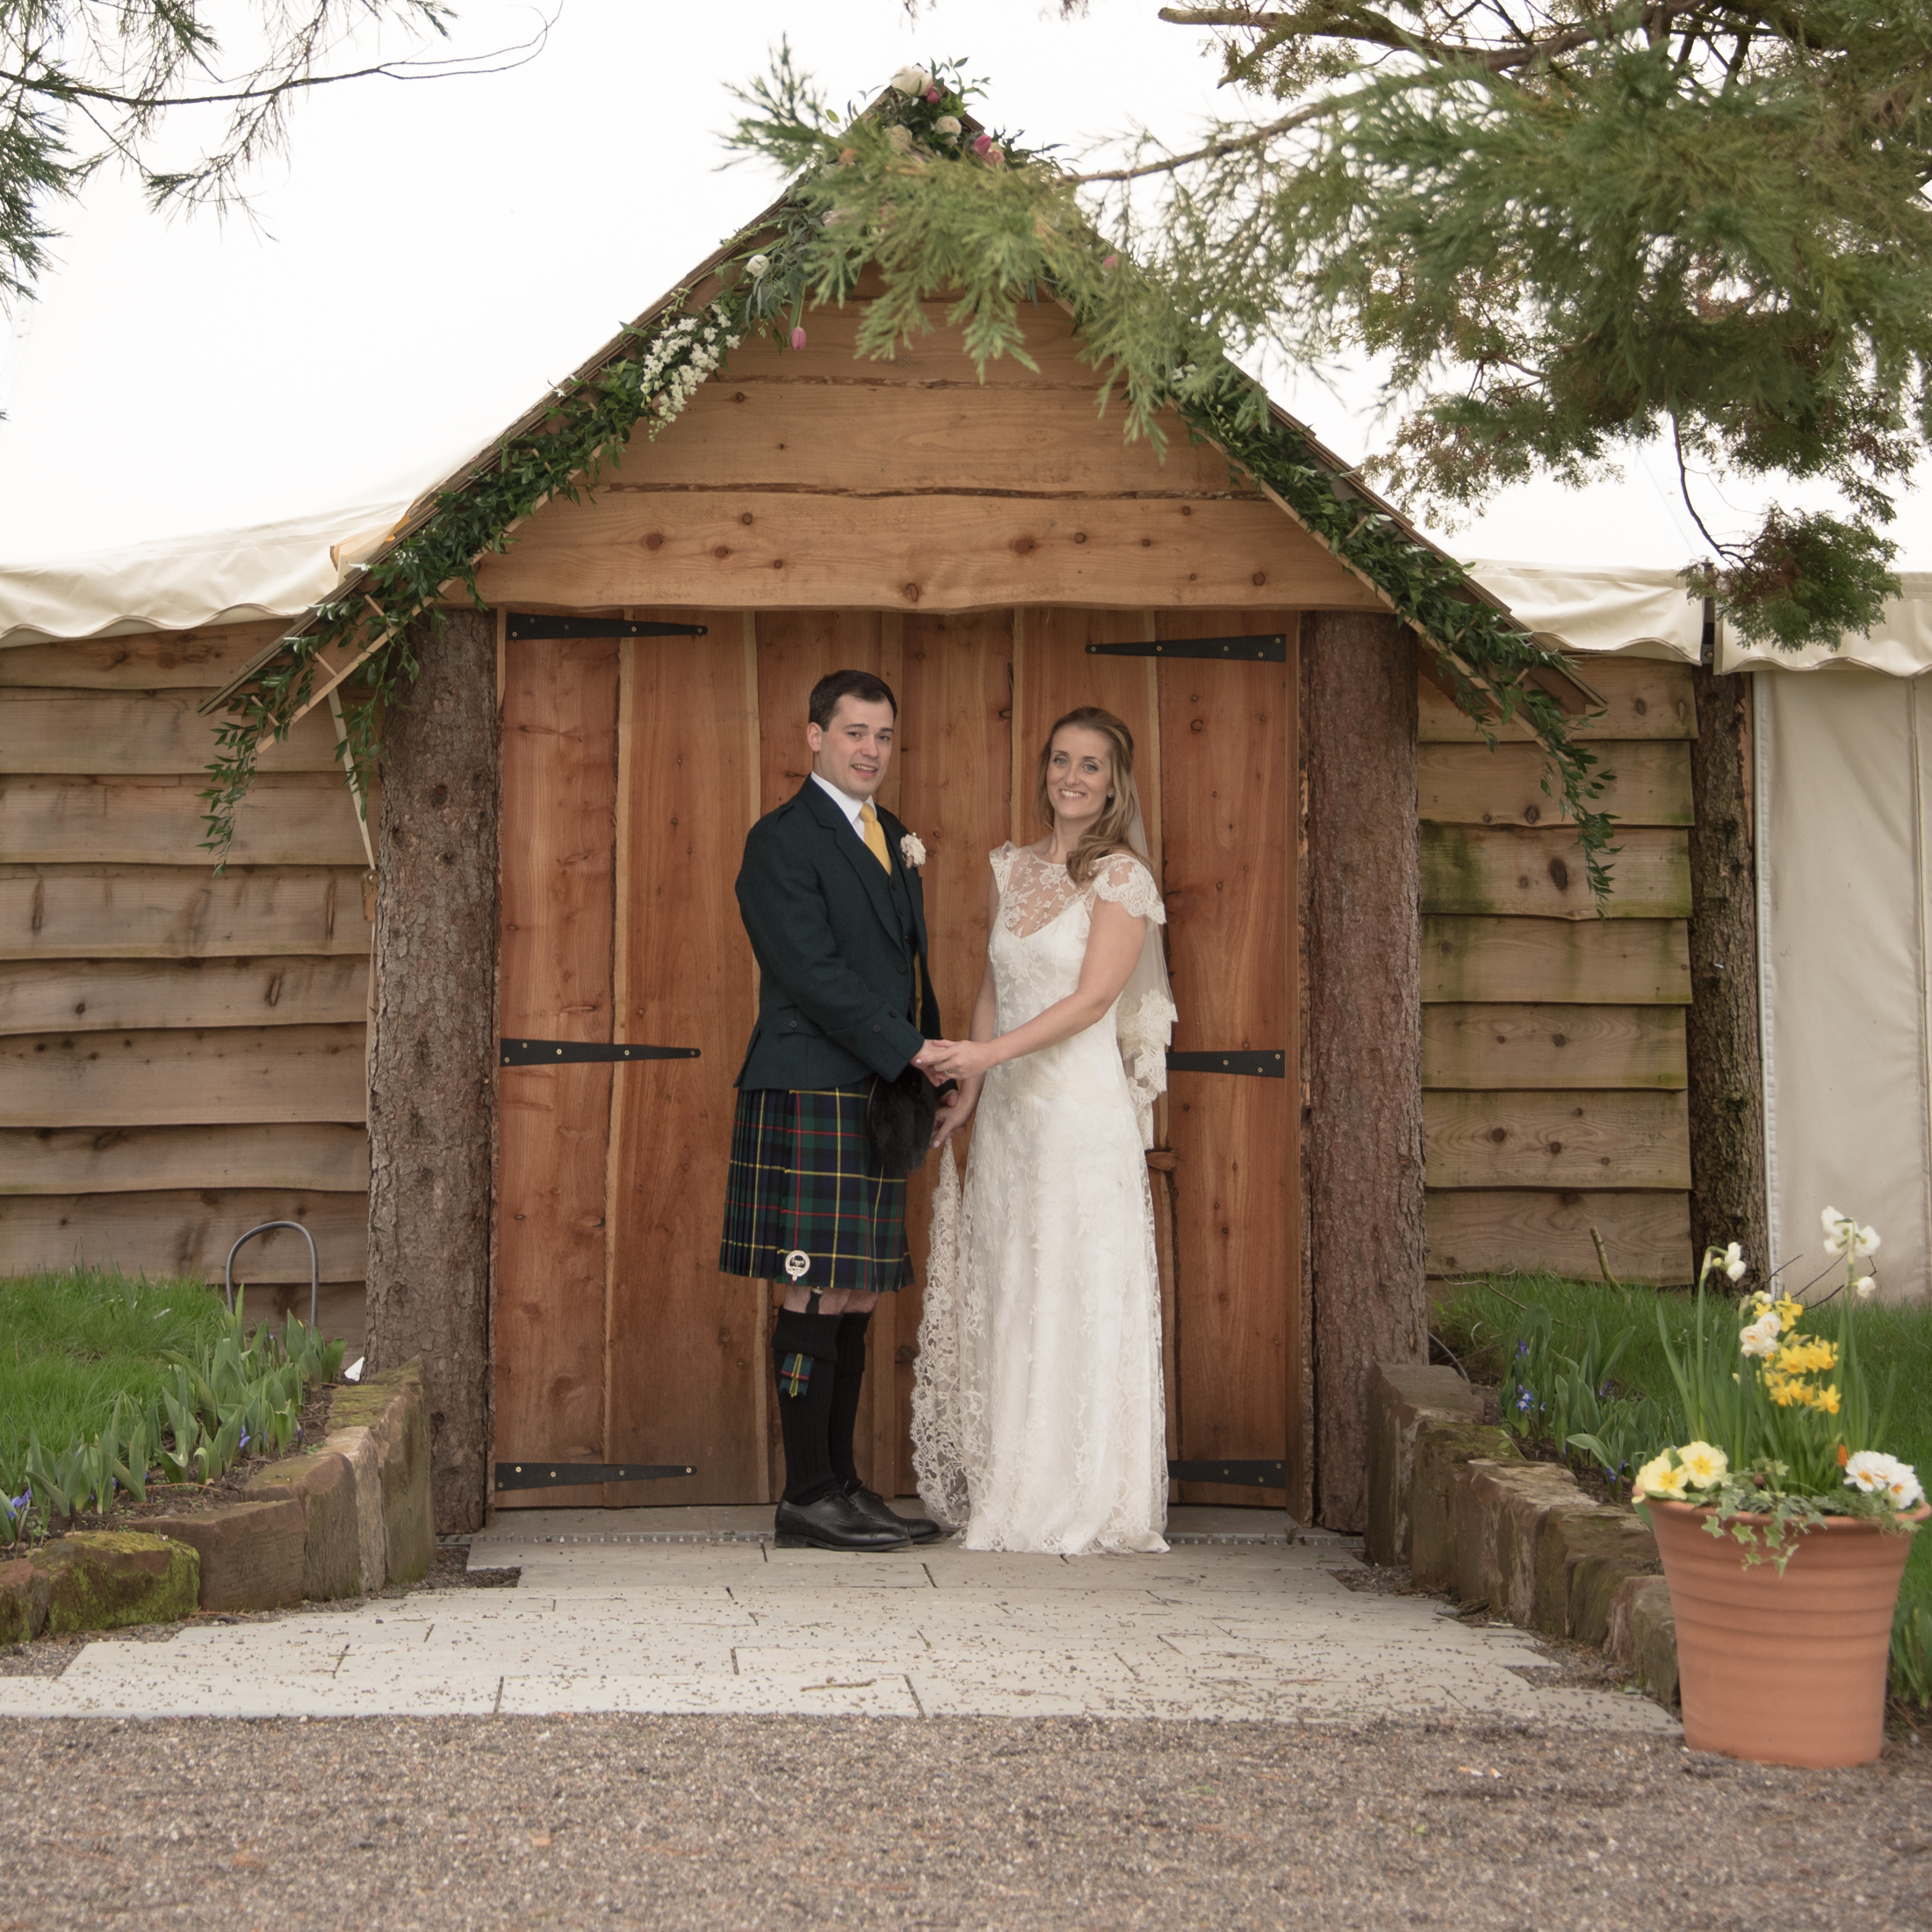 2016-04-02 SIONED AND NEIL FALKLAND MYRES CASTLE173603.jpg